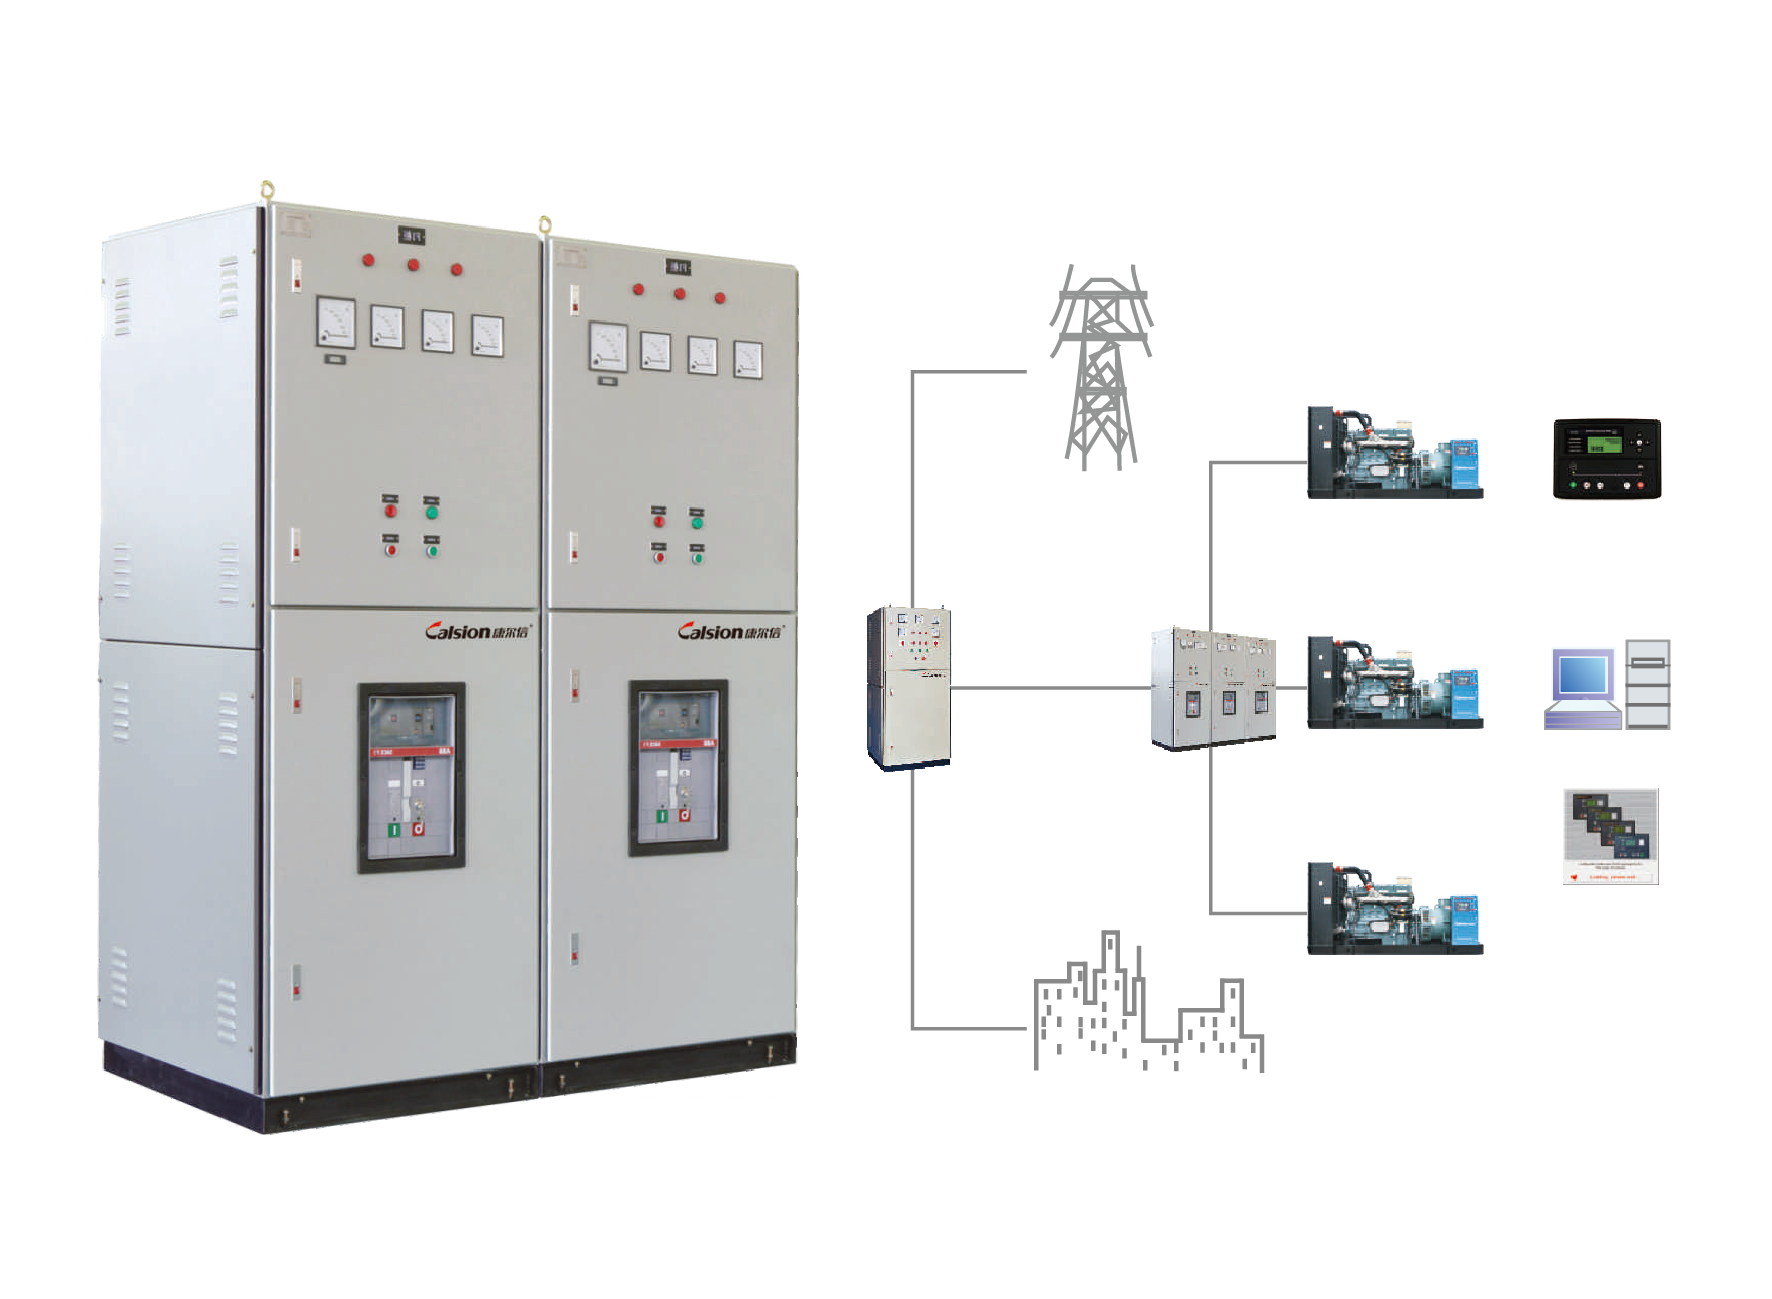 Soft Loading Transfer Switch further Generator Synchronization Diagram further 200 Kva Generator Hire together with Function And Arbitrary Waveform Generator Guidebook further Generator Synchronization Diagram. on generator synchronization panel